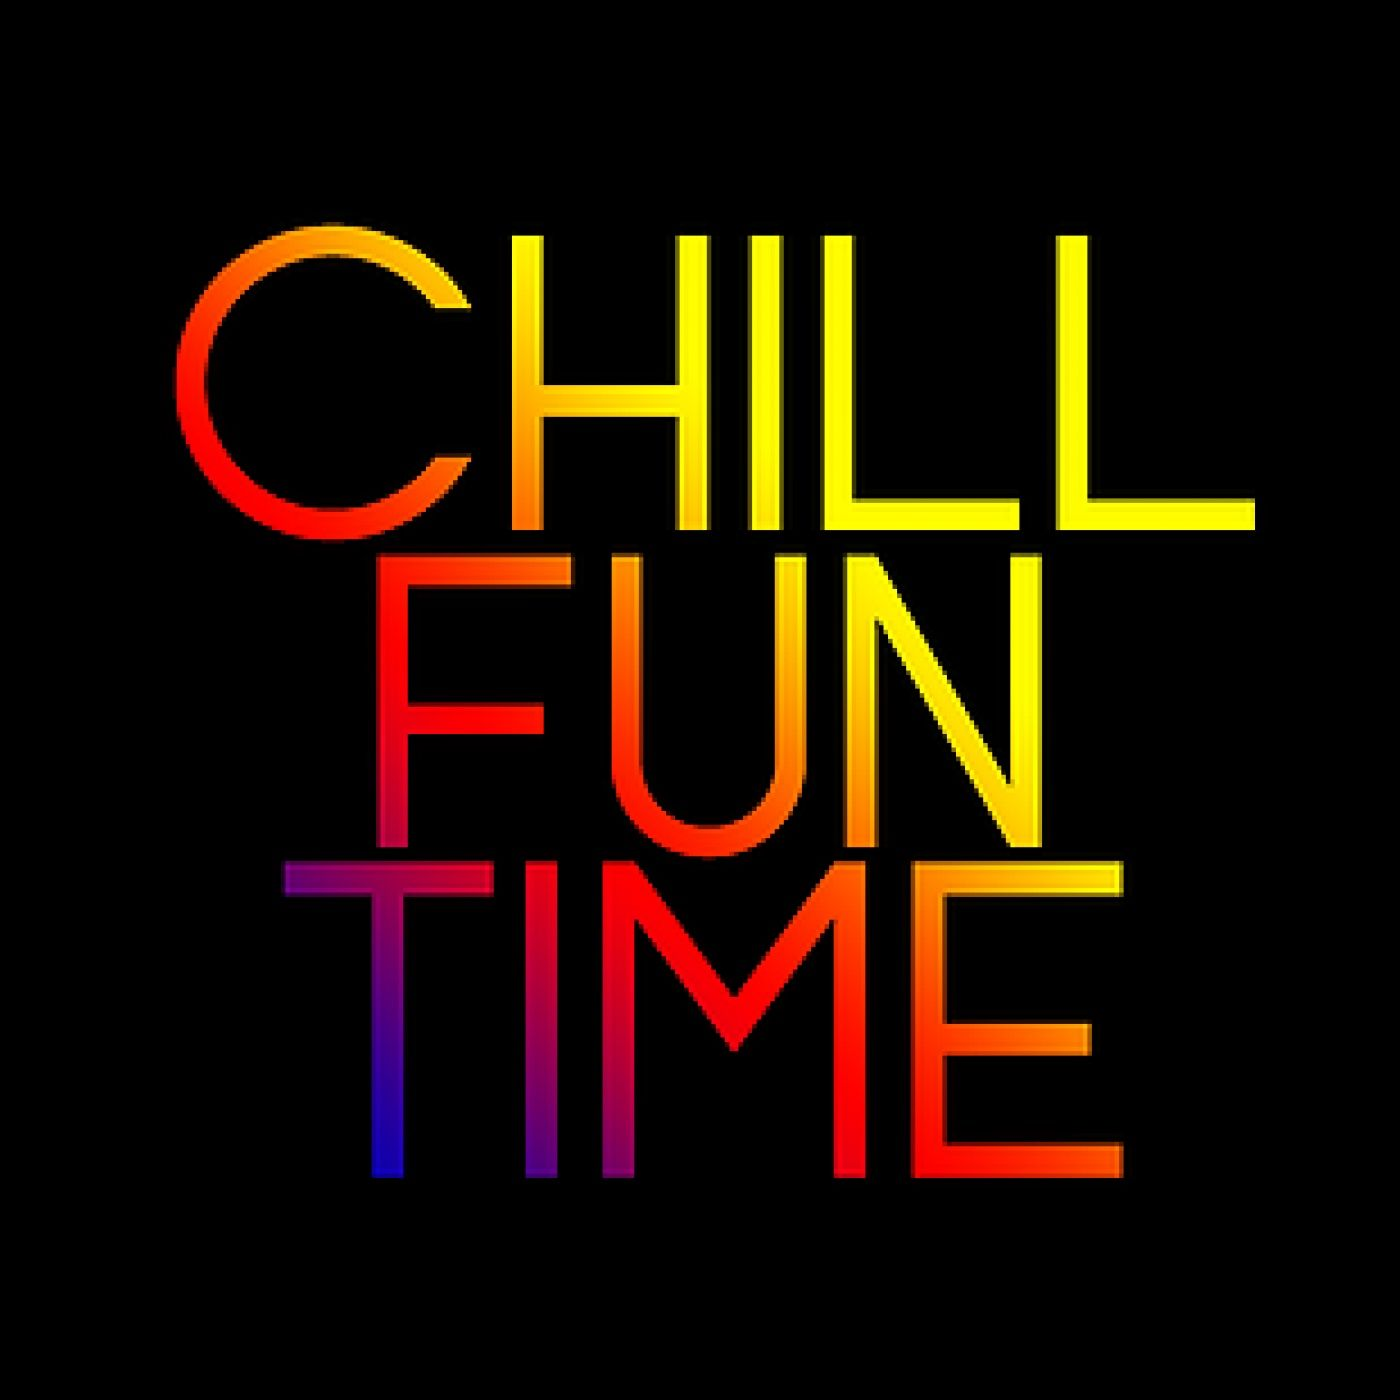 Chill Fun Time